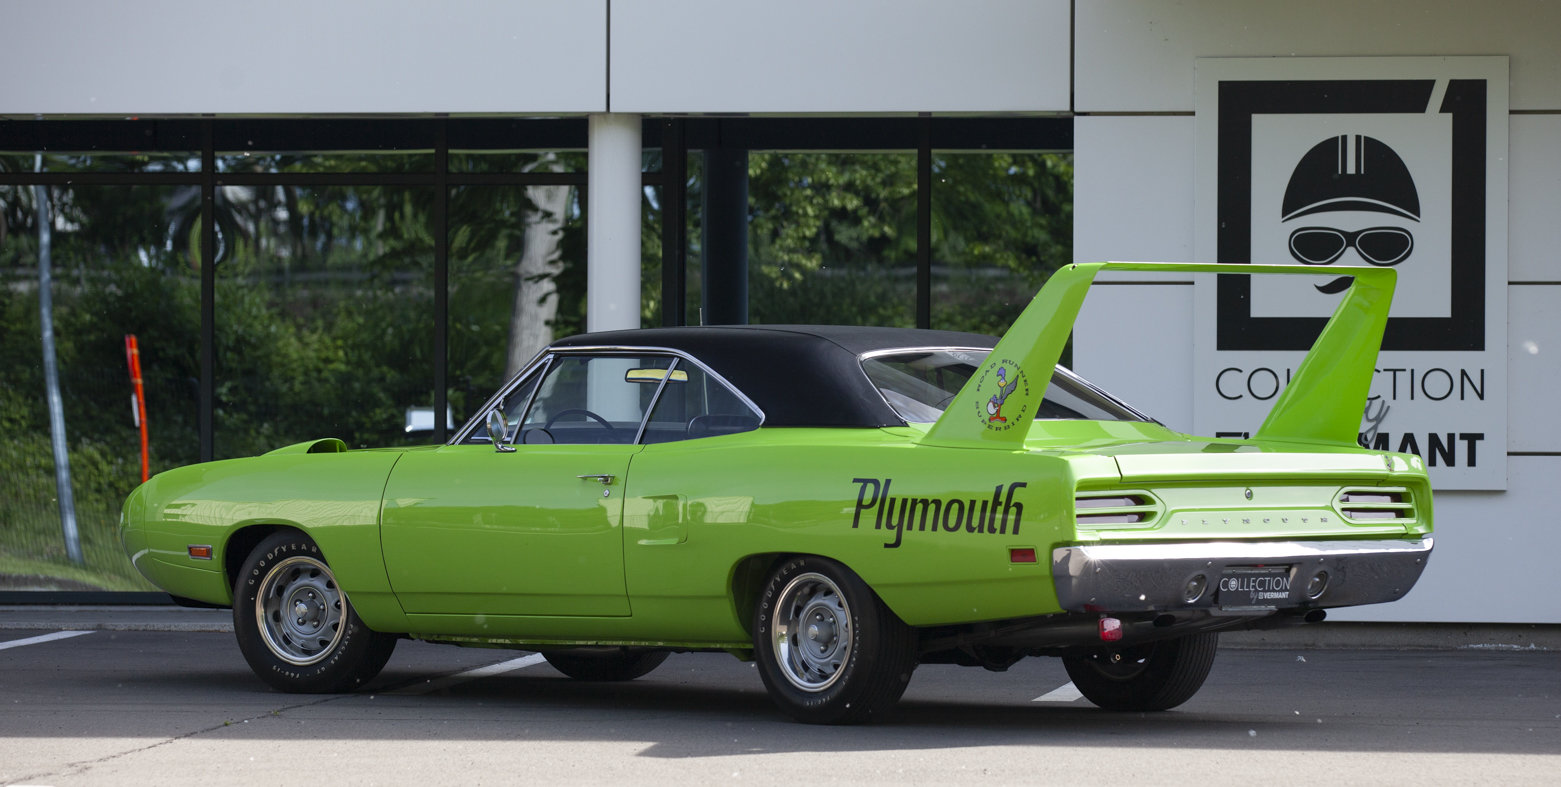 1970 Plymouth Road Runner Superbird - Concours winner!! For Sale (picture 3 of 6)